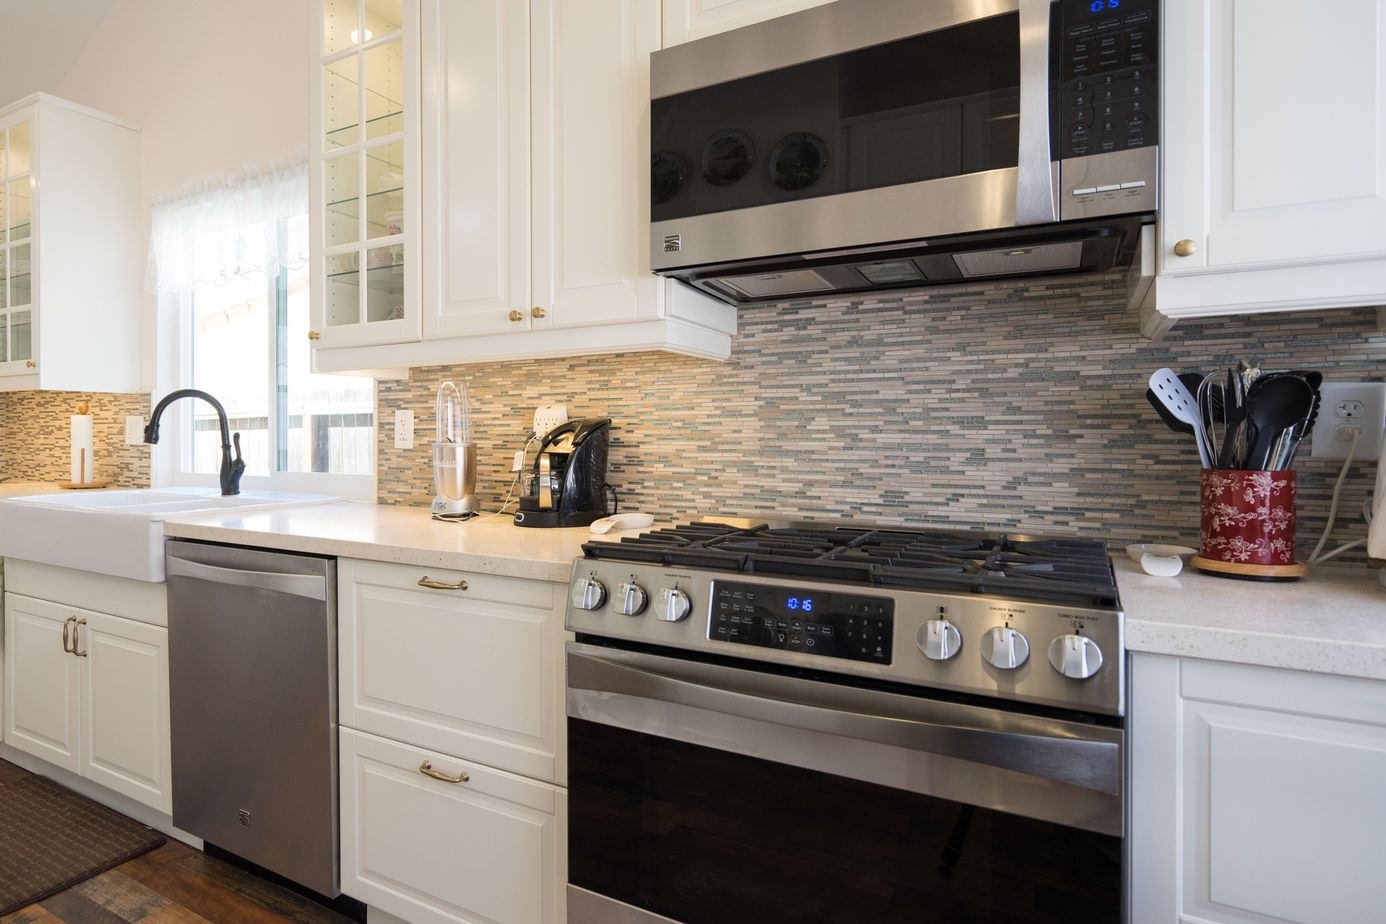 colorful grey and cream backsplash against white kitchen cabinets and countertops